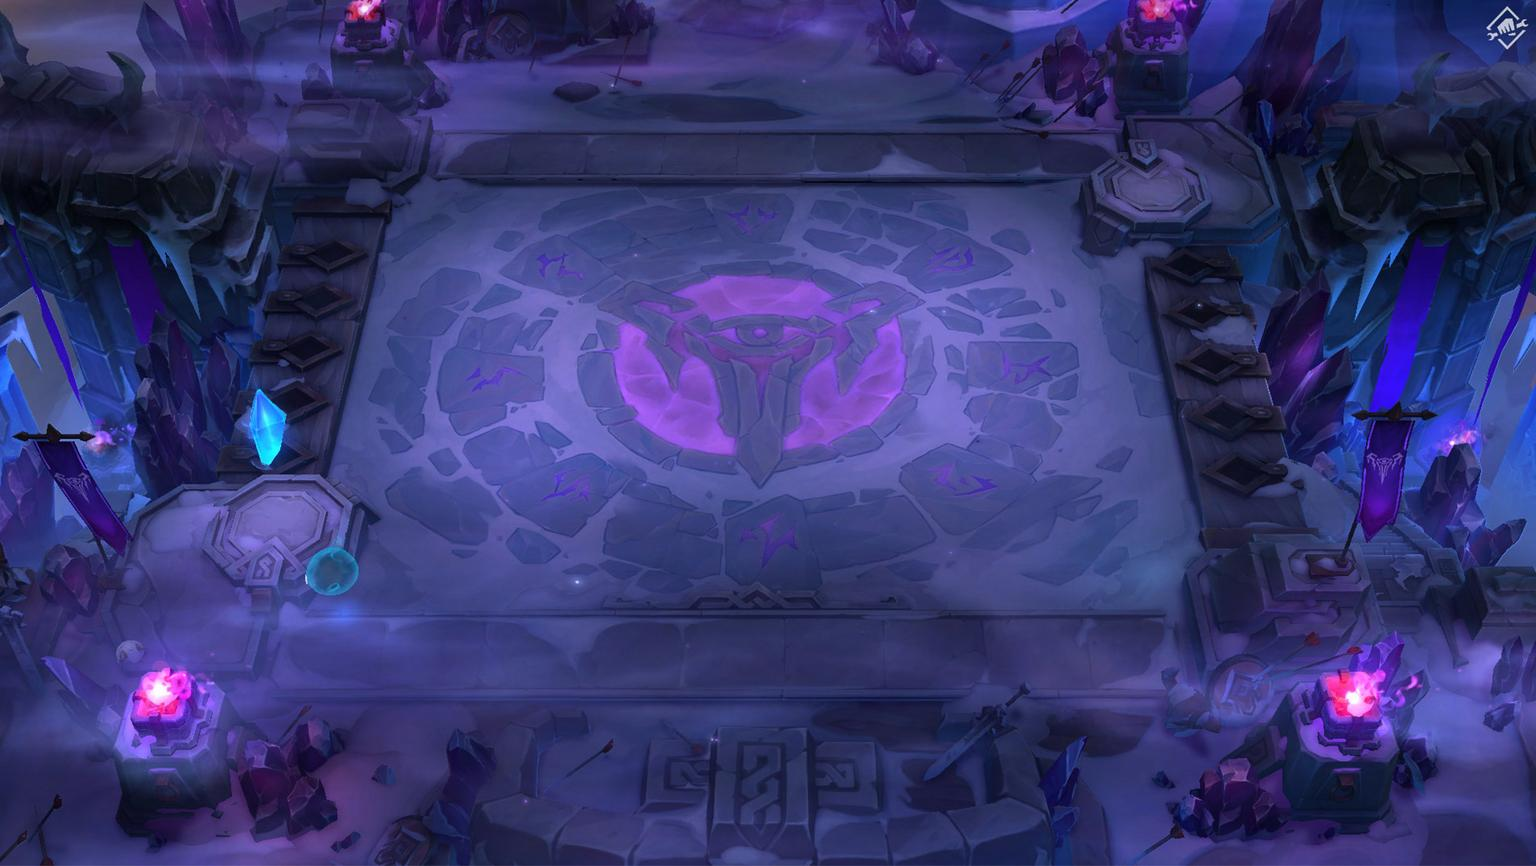 A Teamfight Tactics arena with a purple Frostguard theme